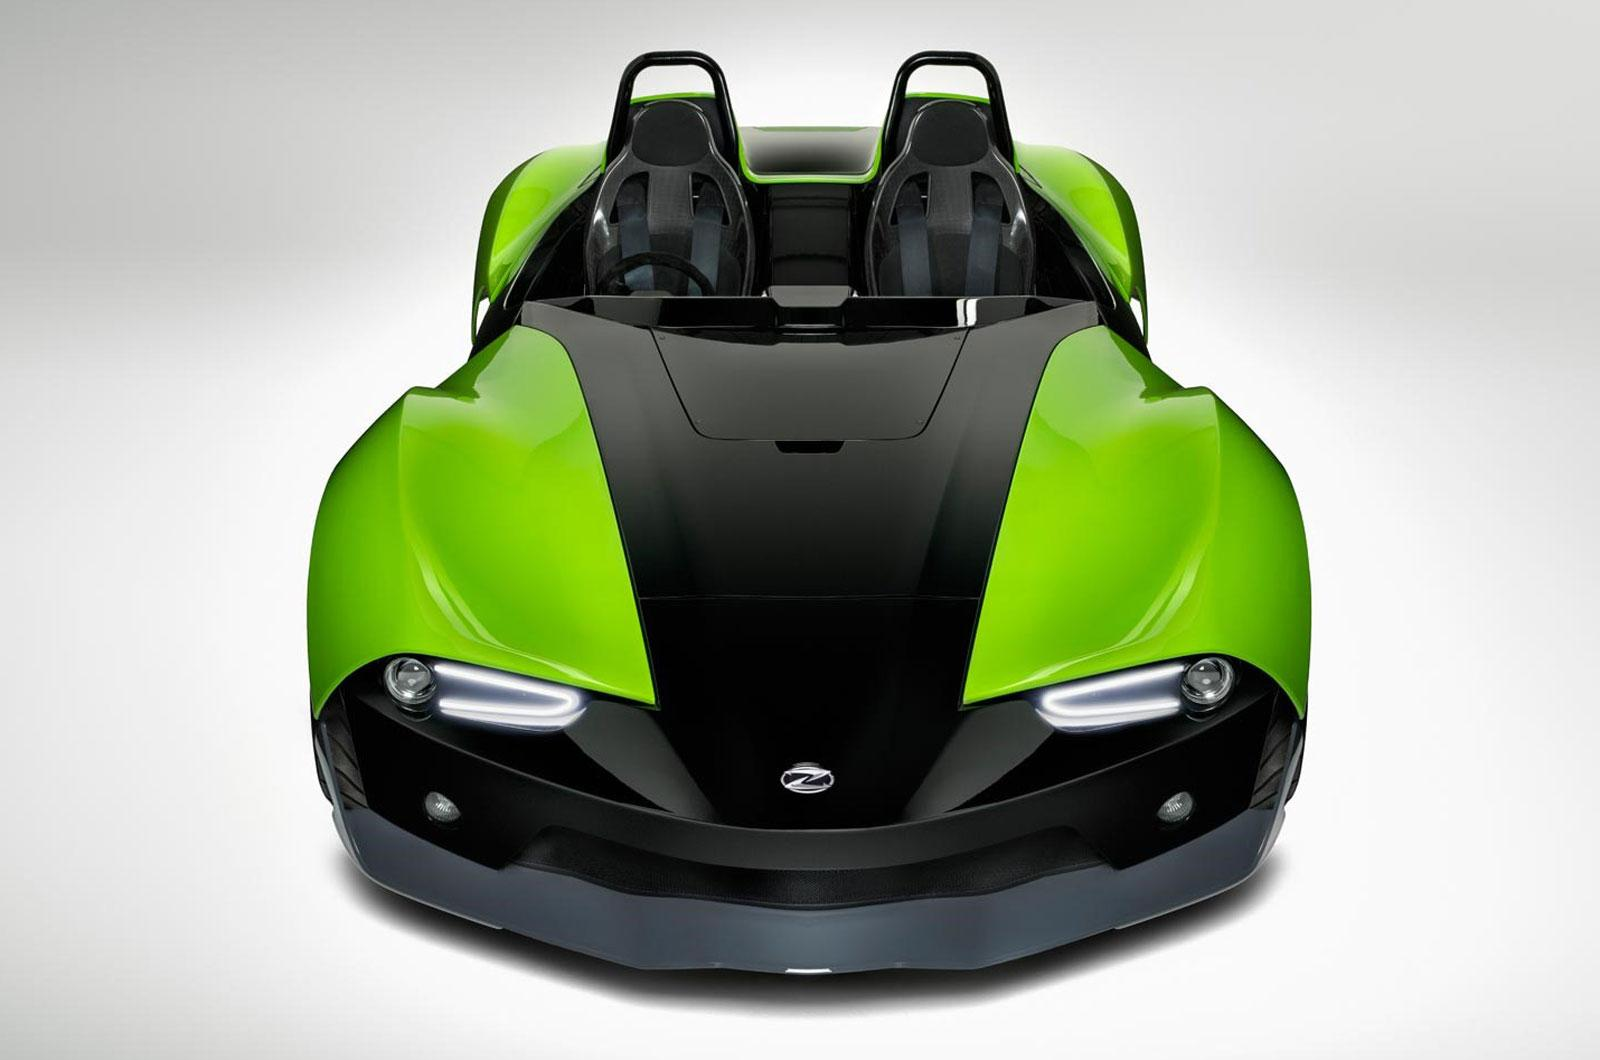 zenos e10 s follows in the footsteps of the caterham aeroseven